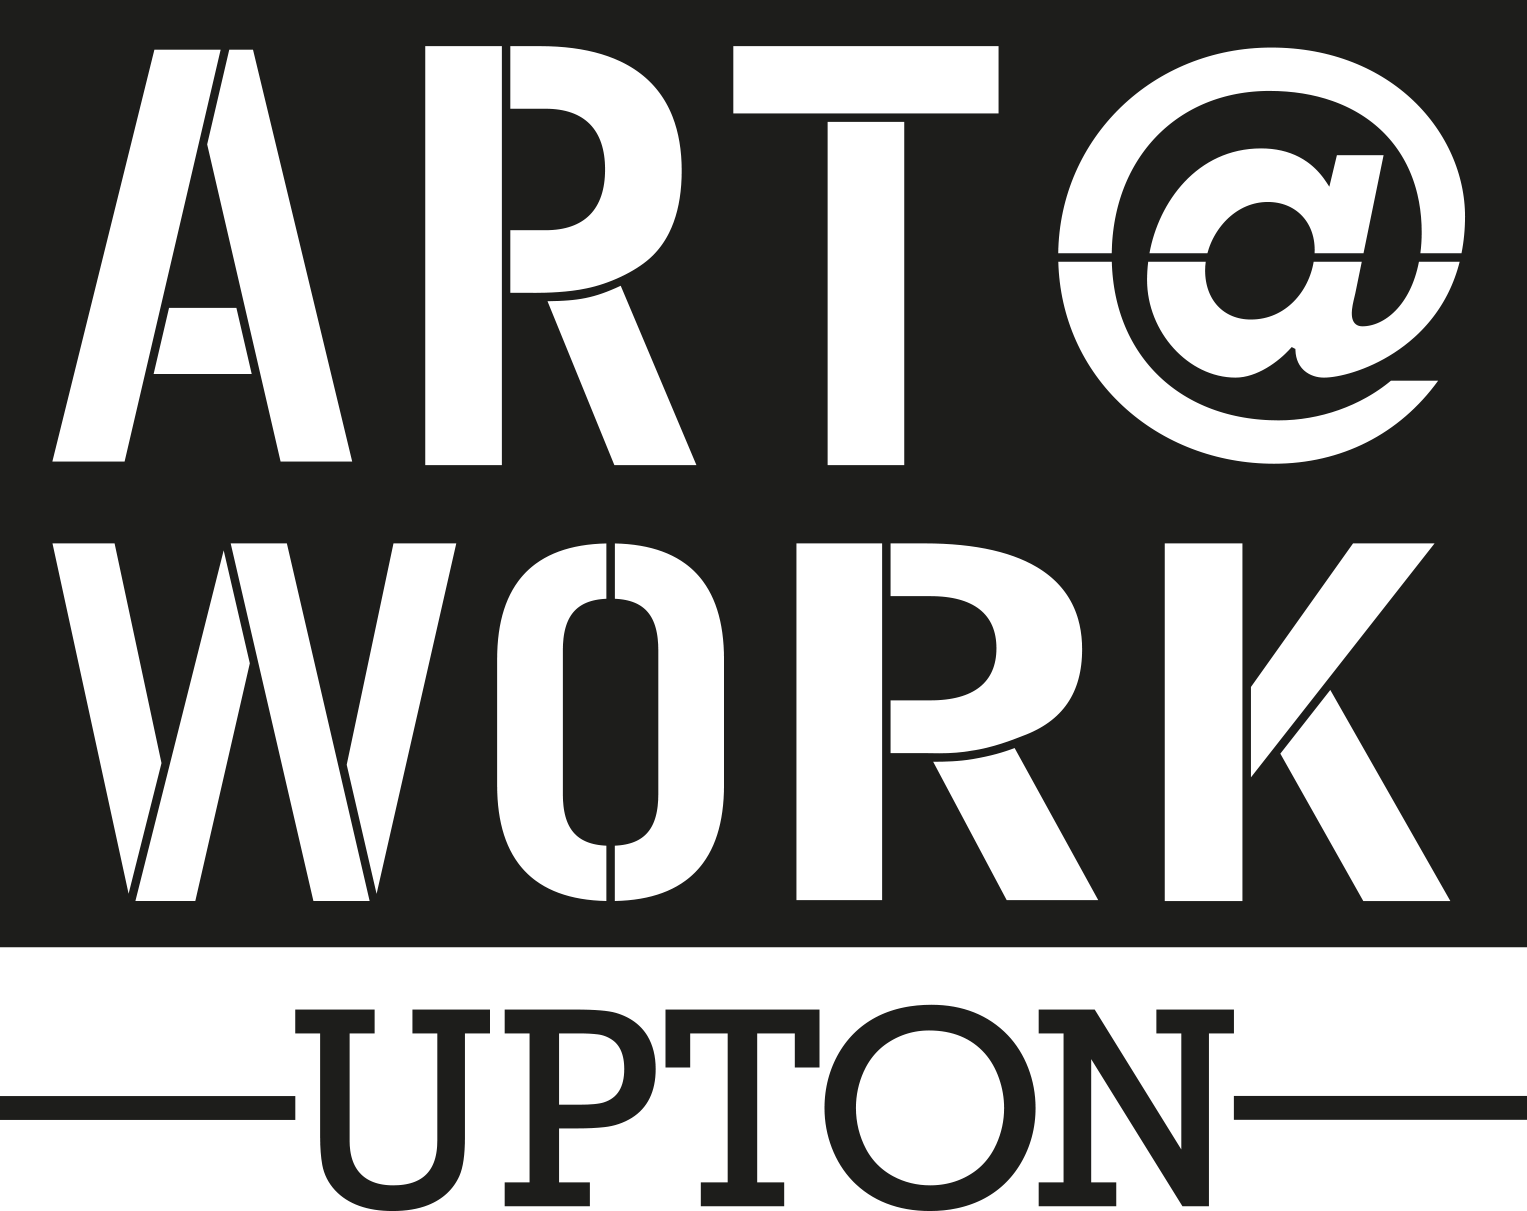 ART@WORK_UPTONlogo-2